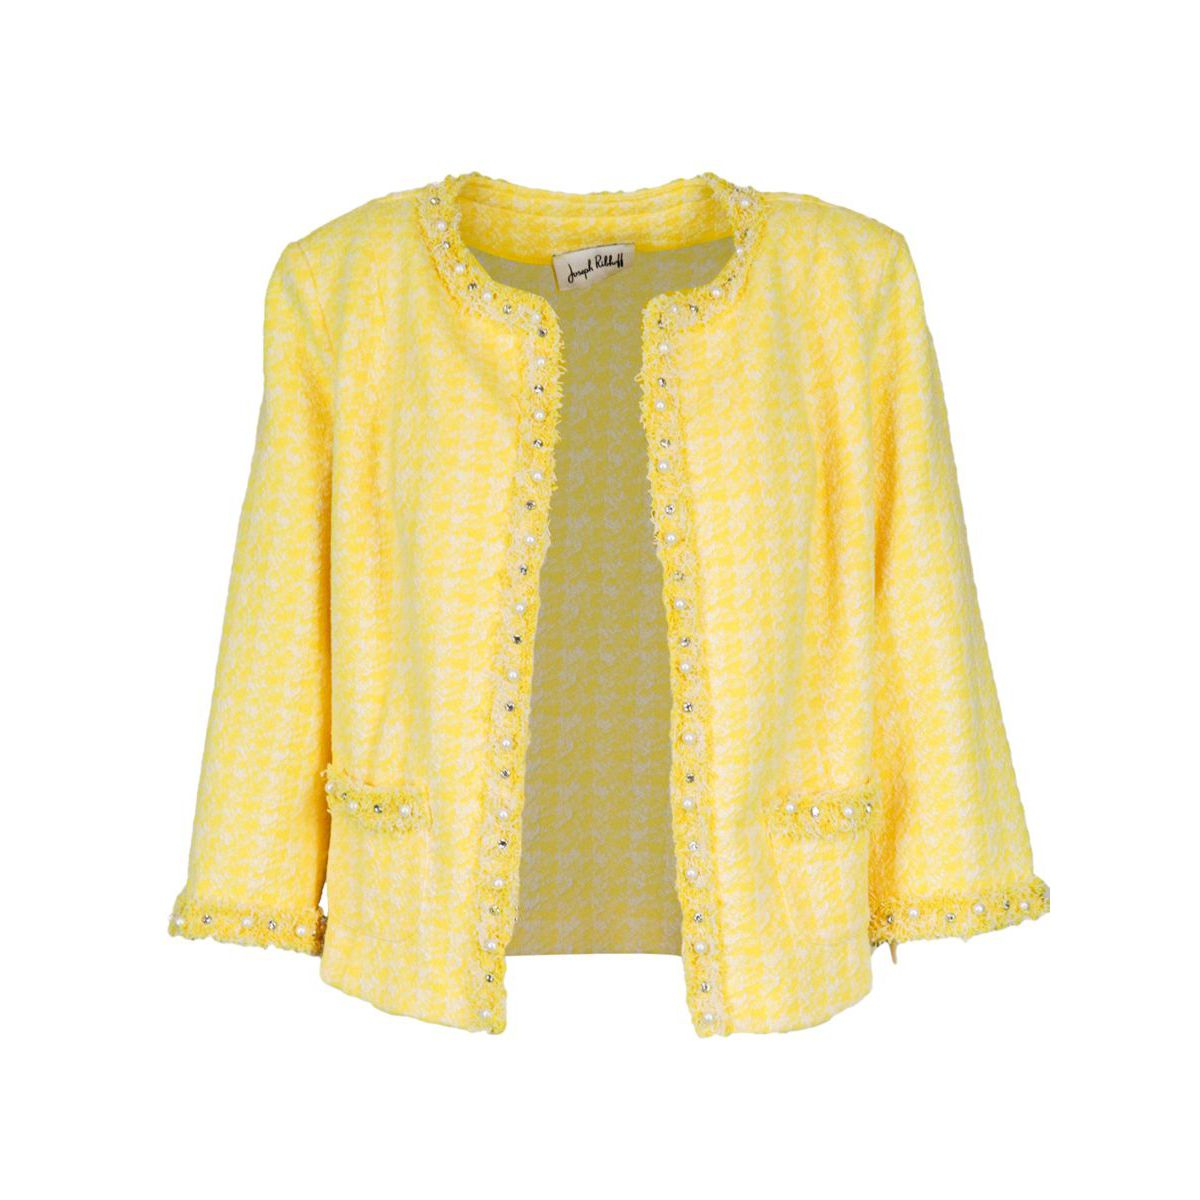 Chanel model jacket in cotton blend Yellow Joseph Ribkoff